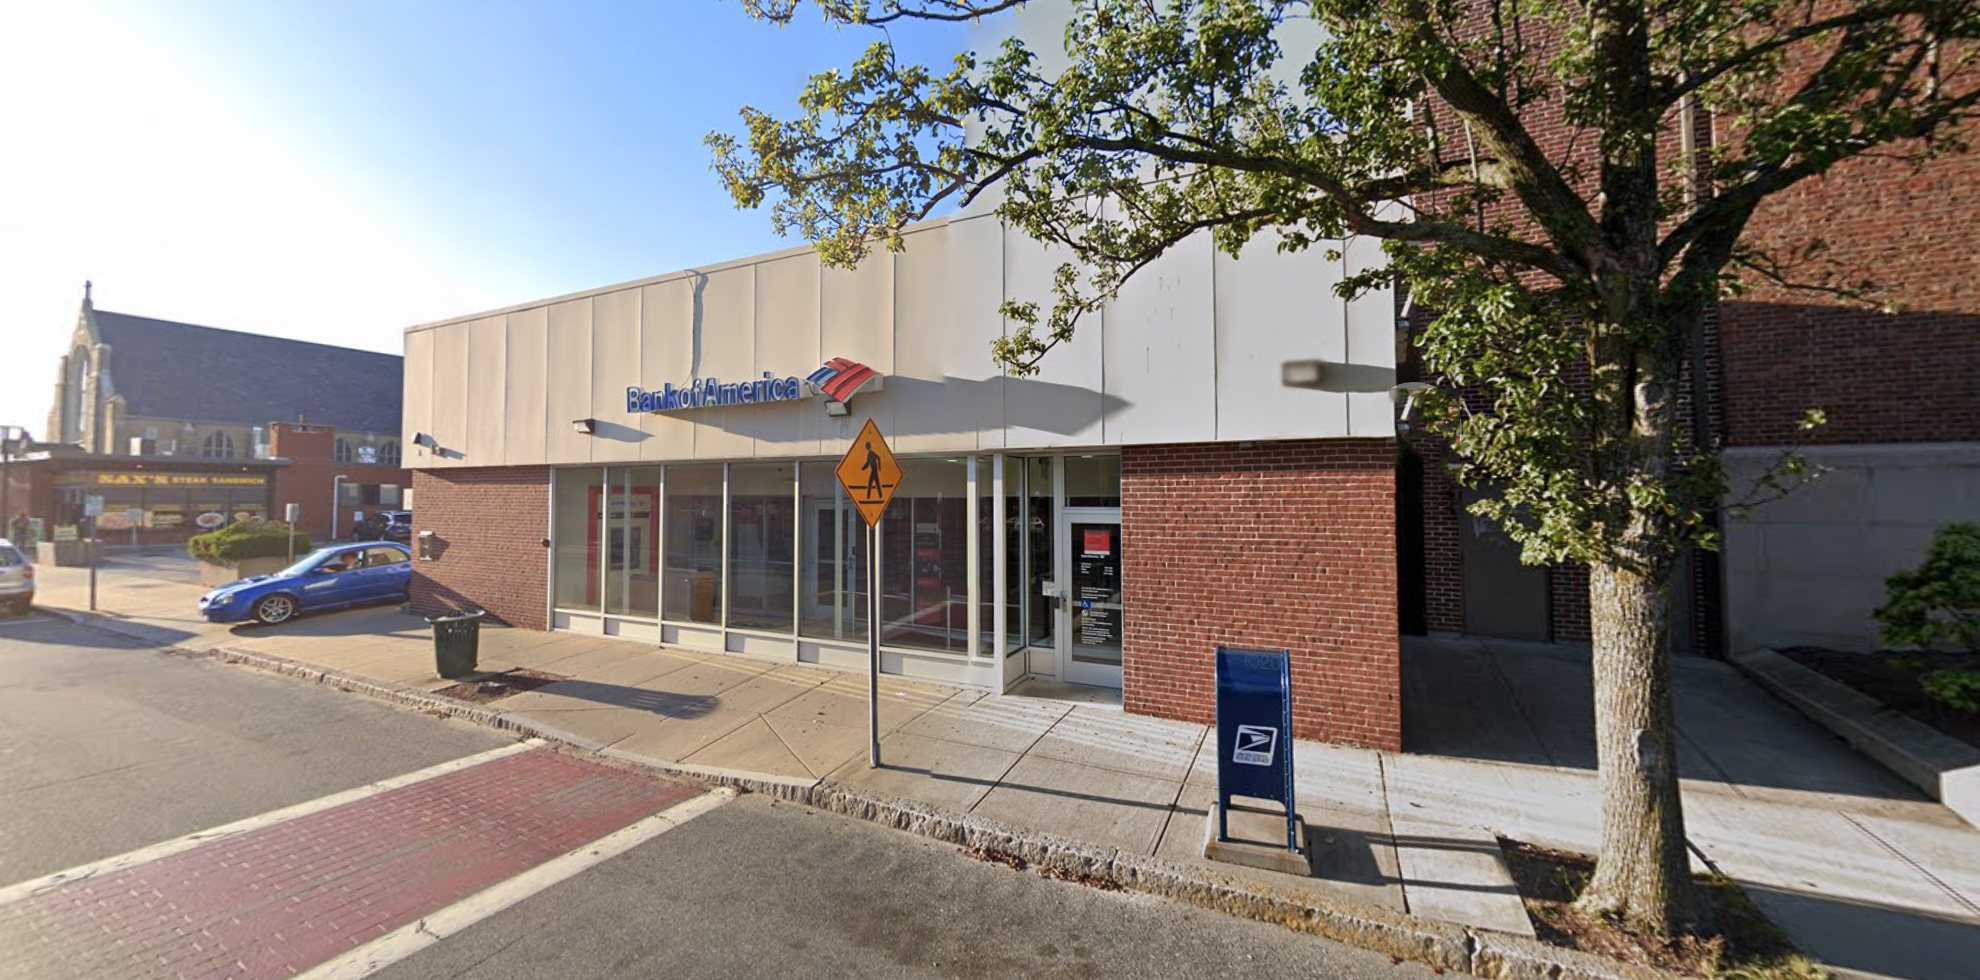 Bank of America financial center with drive-thru ATM | 218 Taunton Ave, East Providence, RI 02914